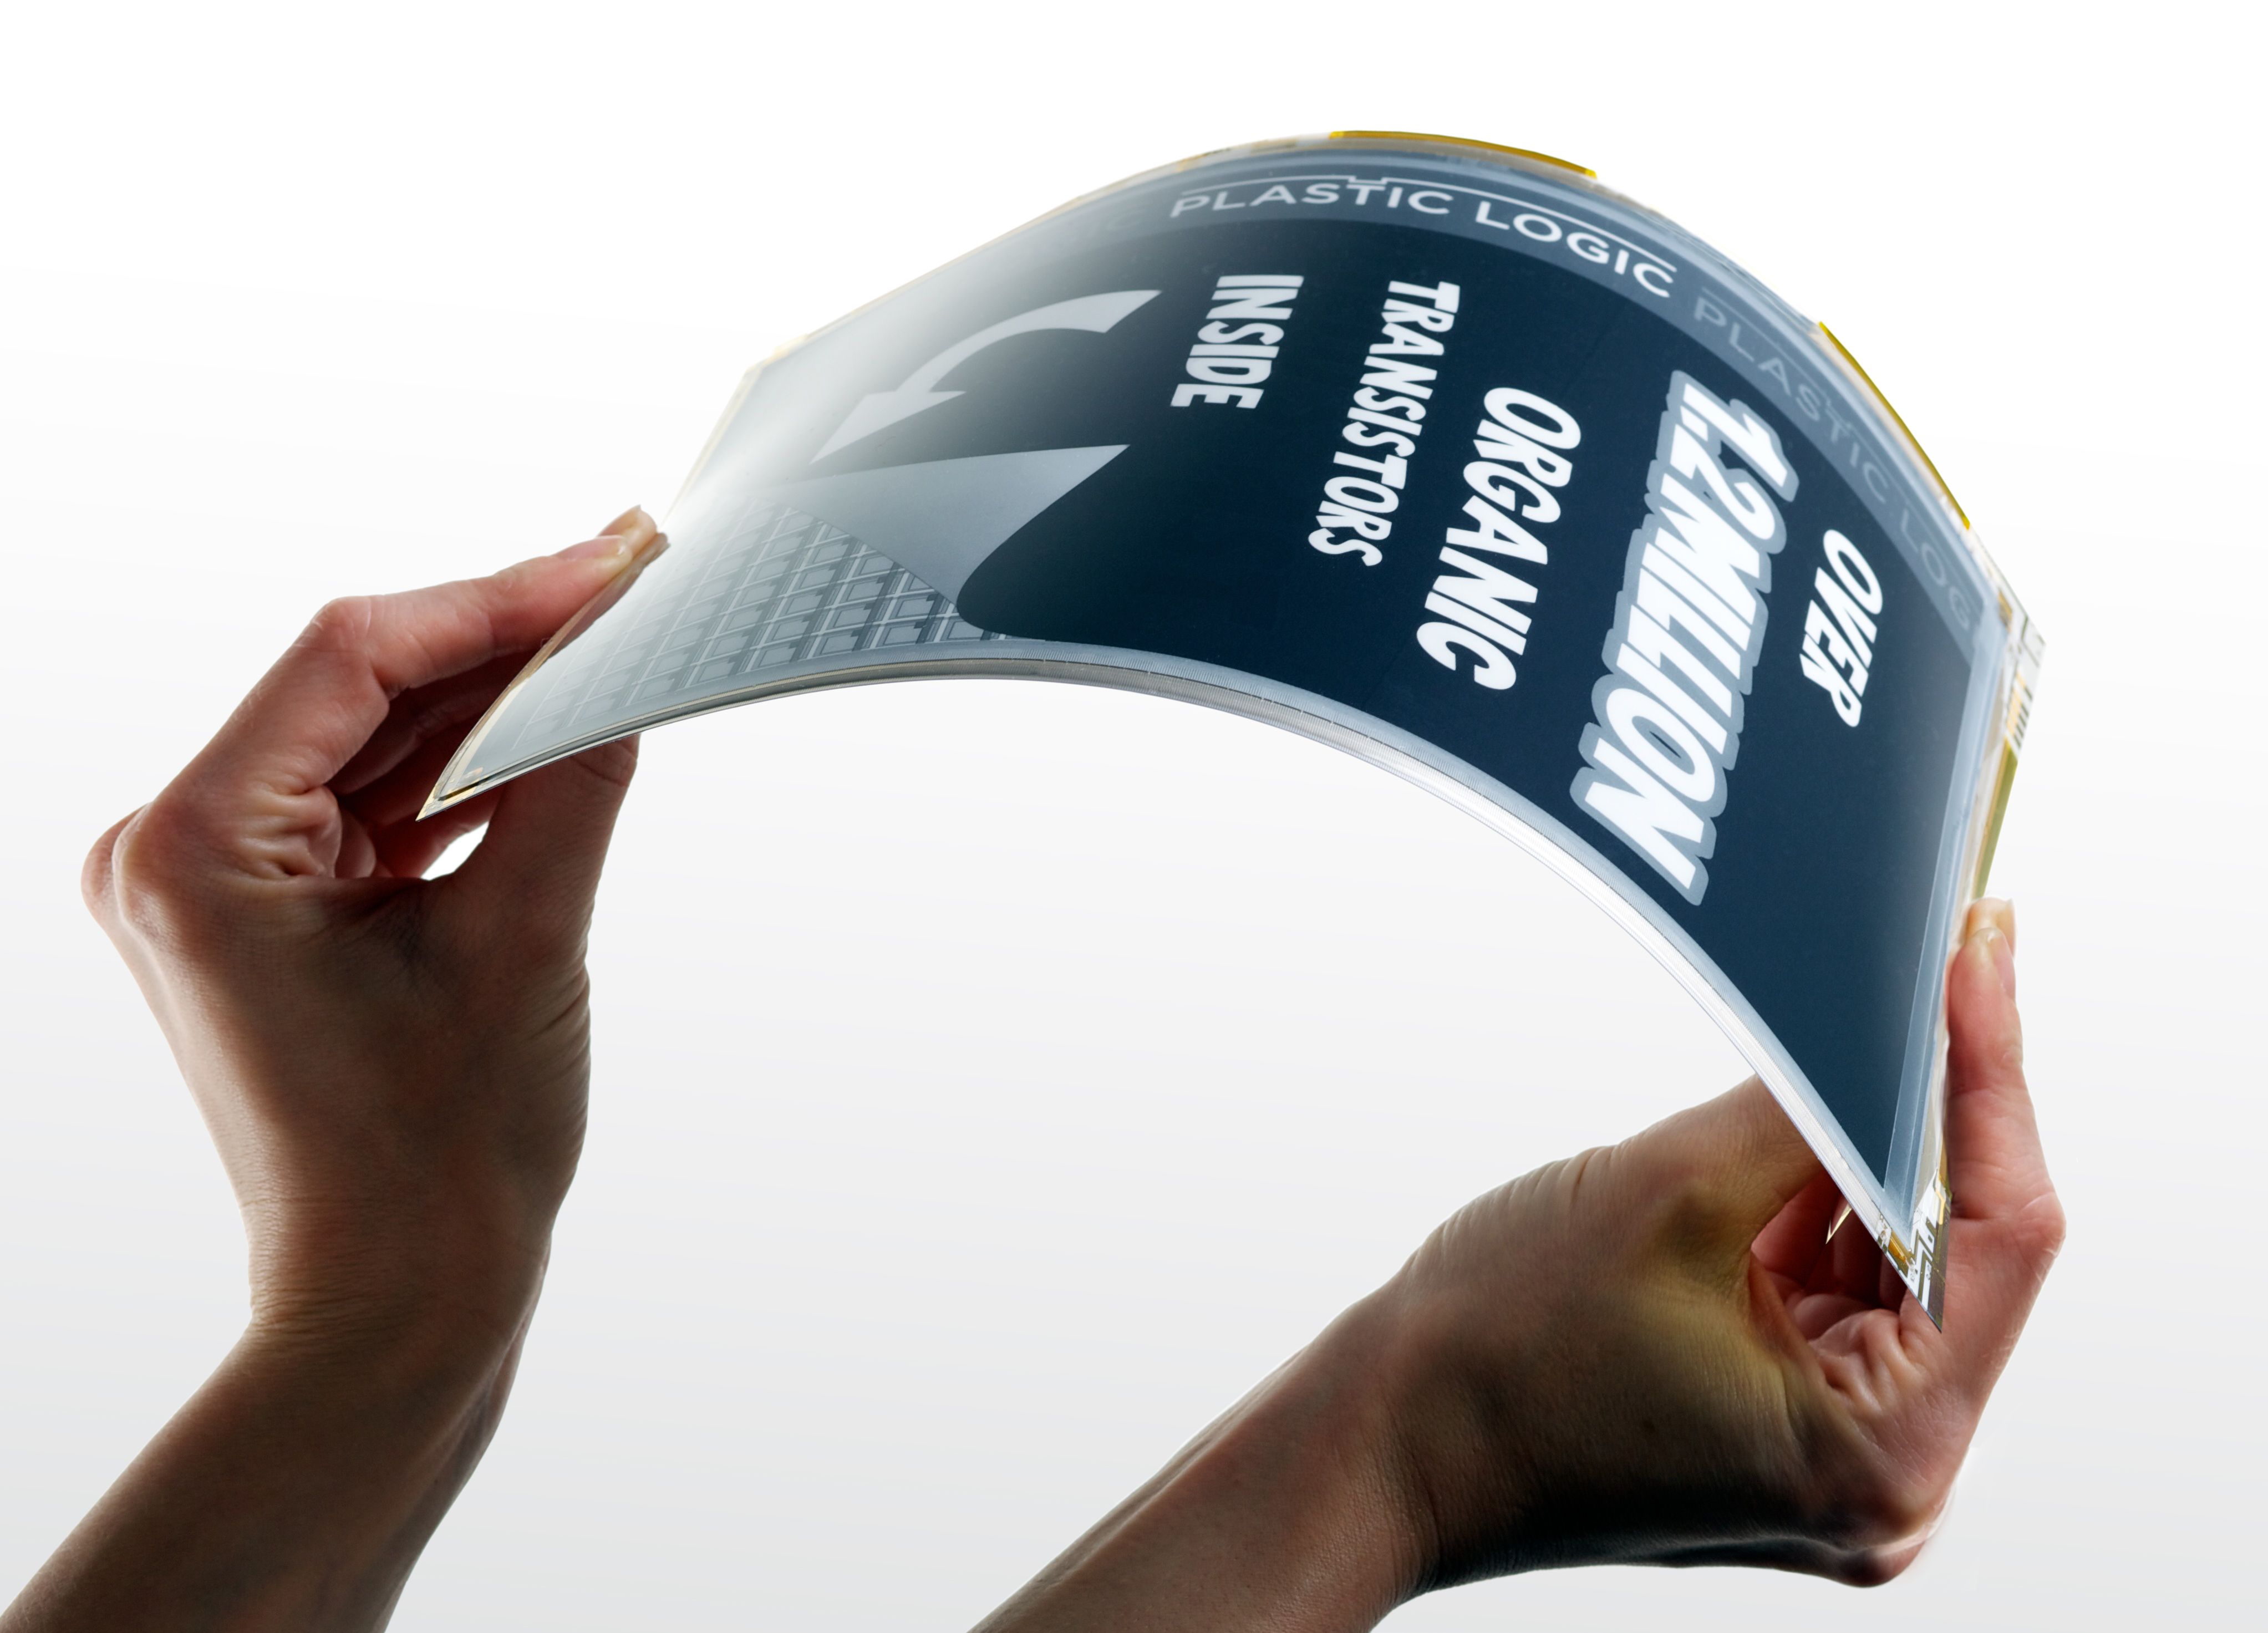 Plastic Logic - founded by Hauser - recently unveiled a flexible tablet computer designed with Intel